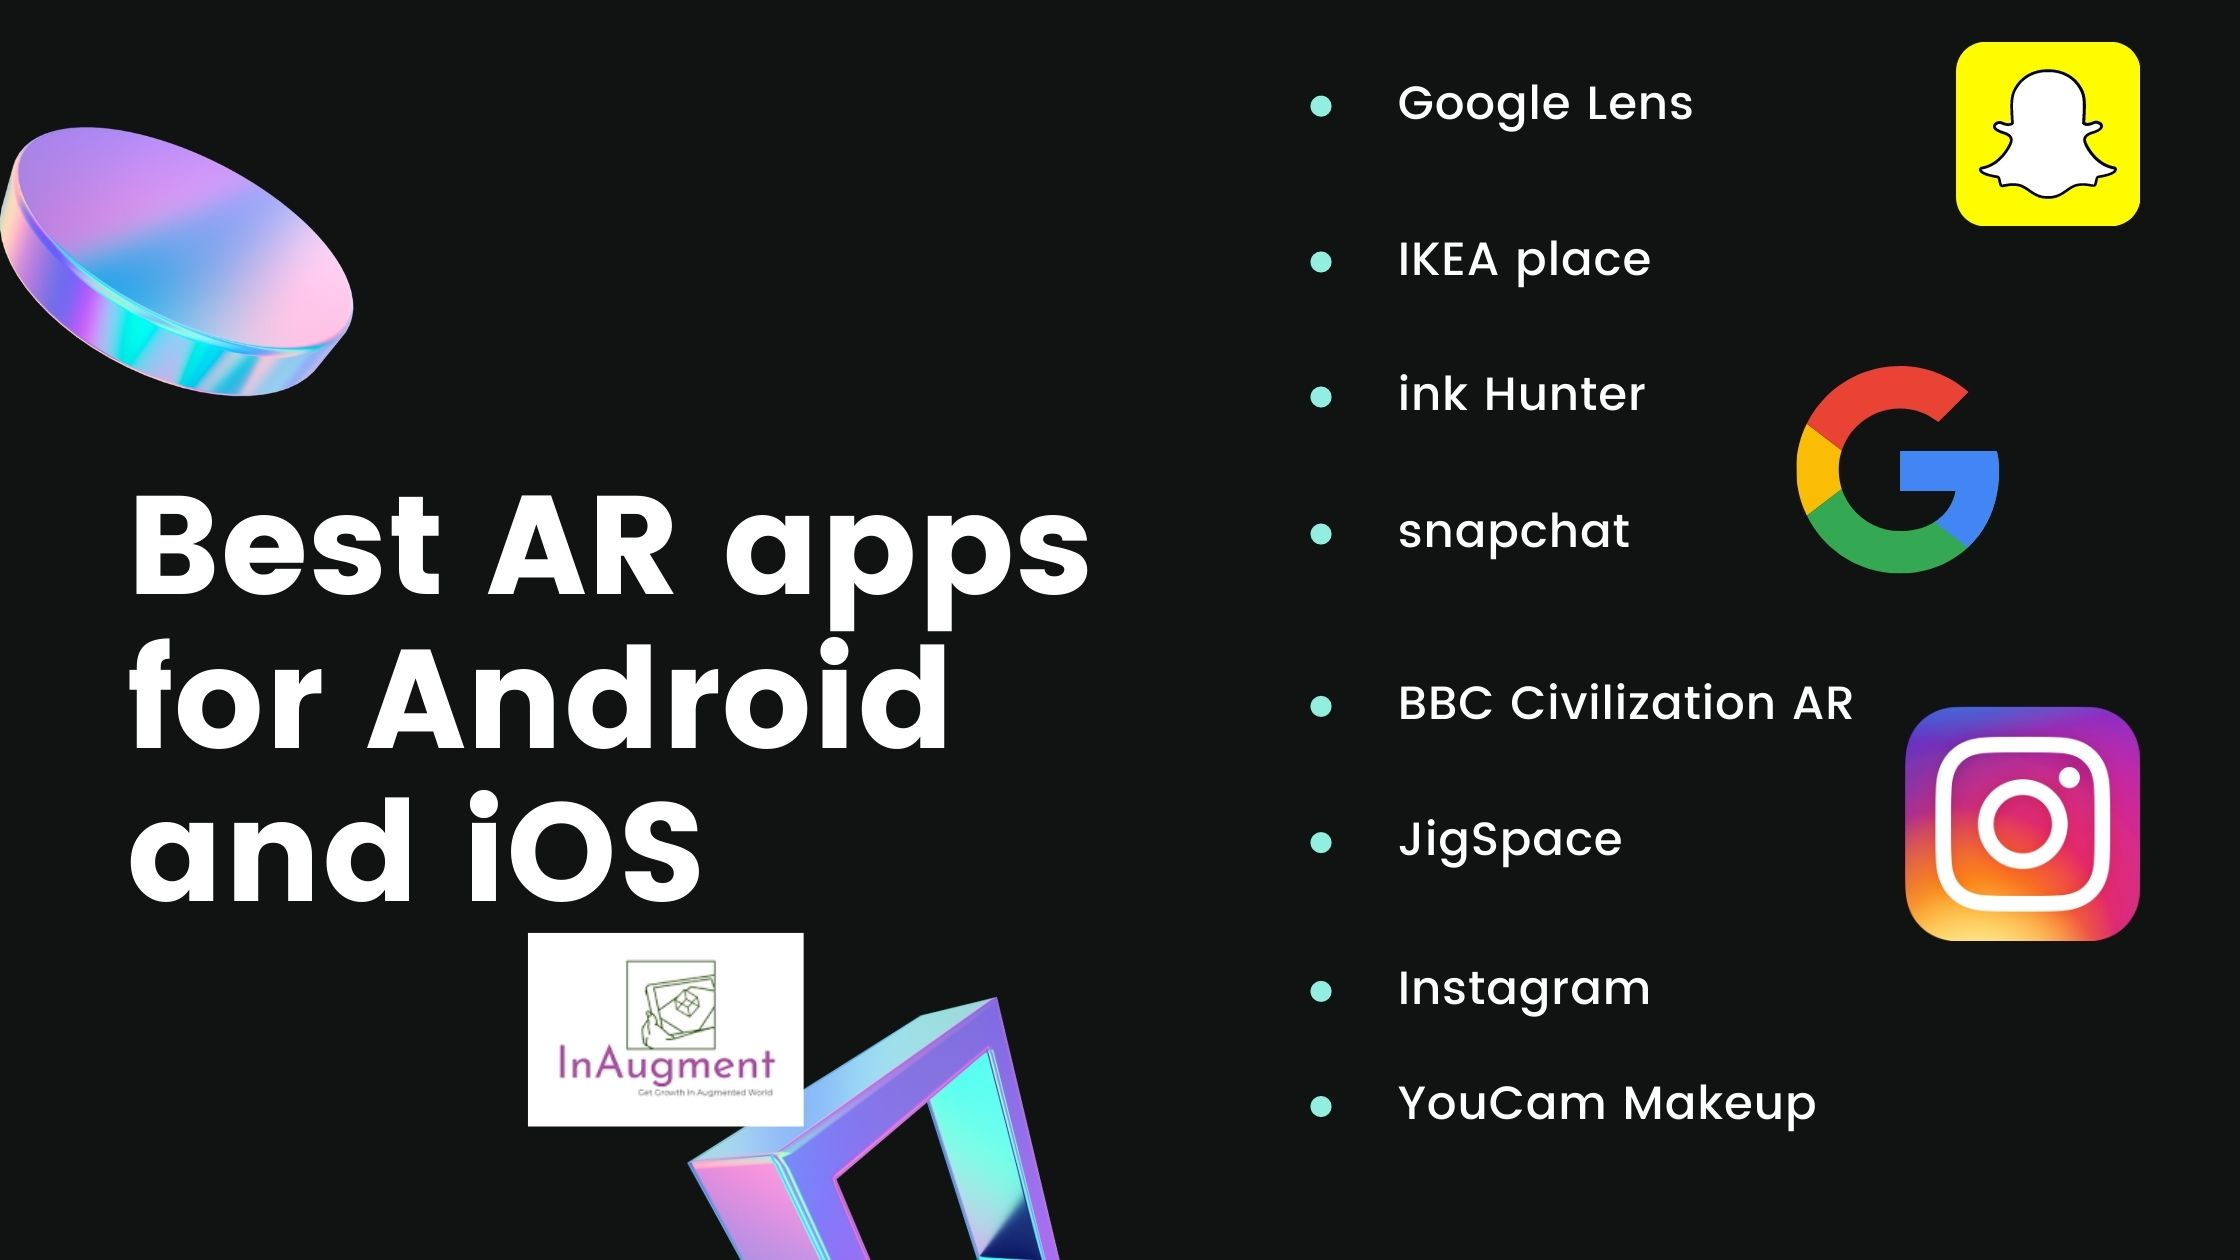 Best AR apps